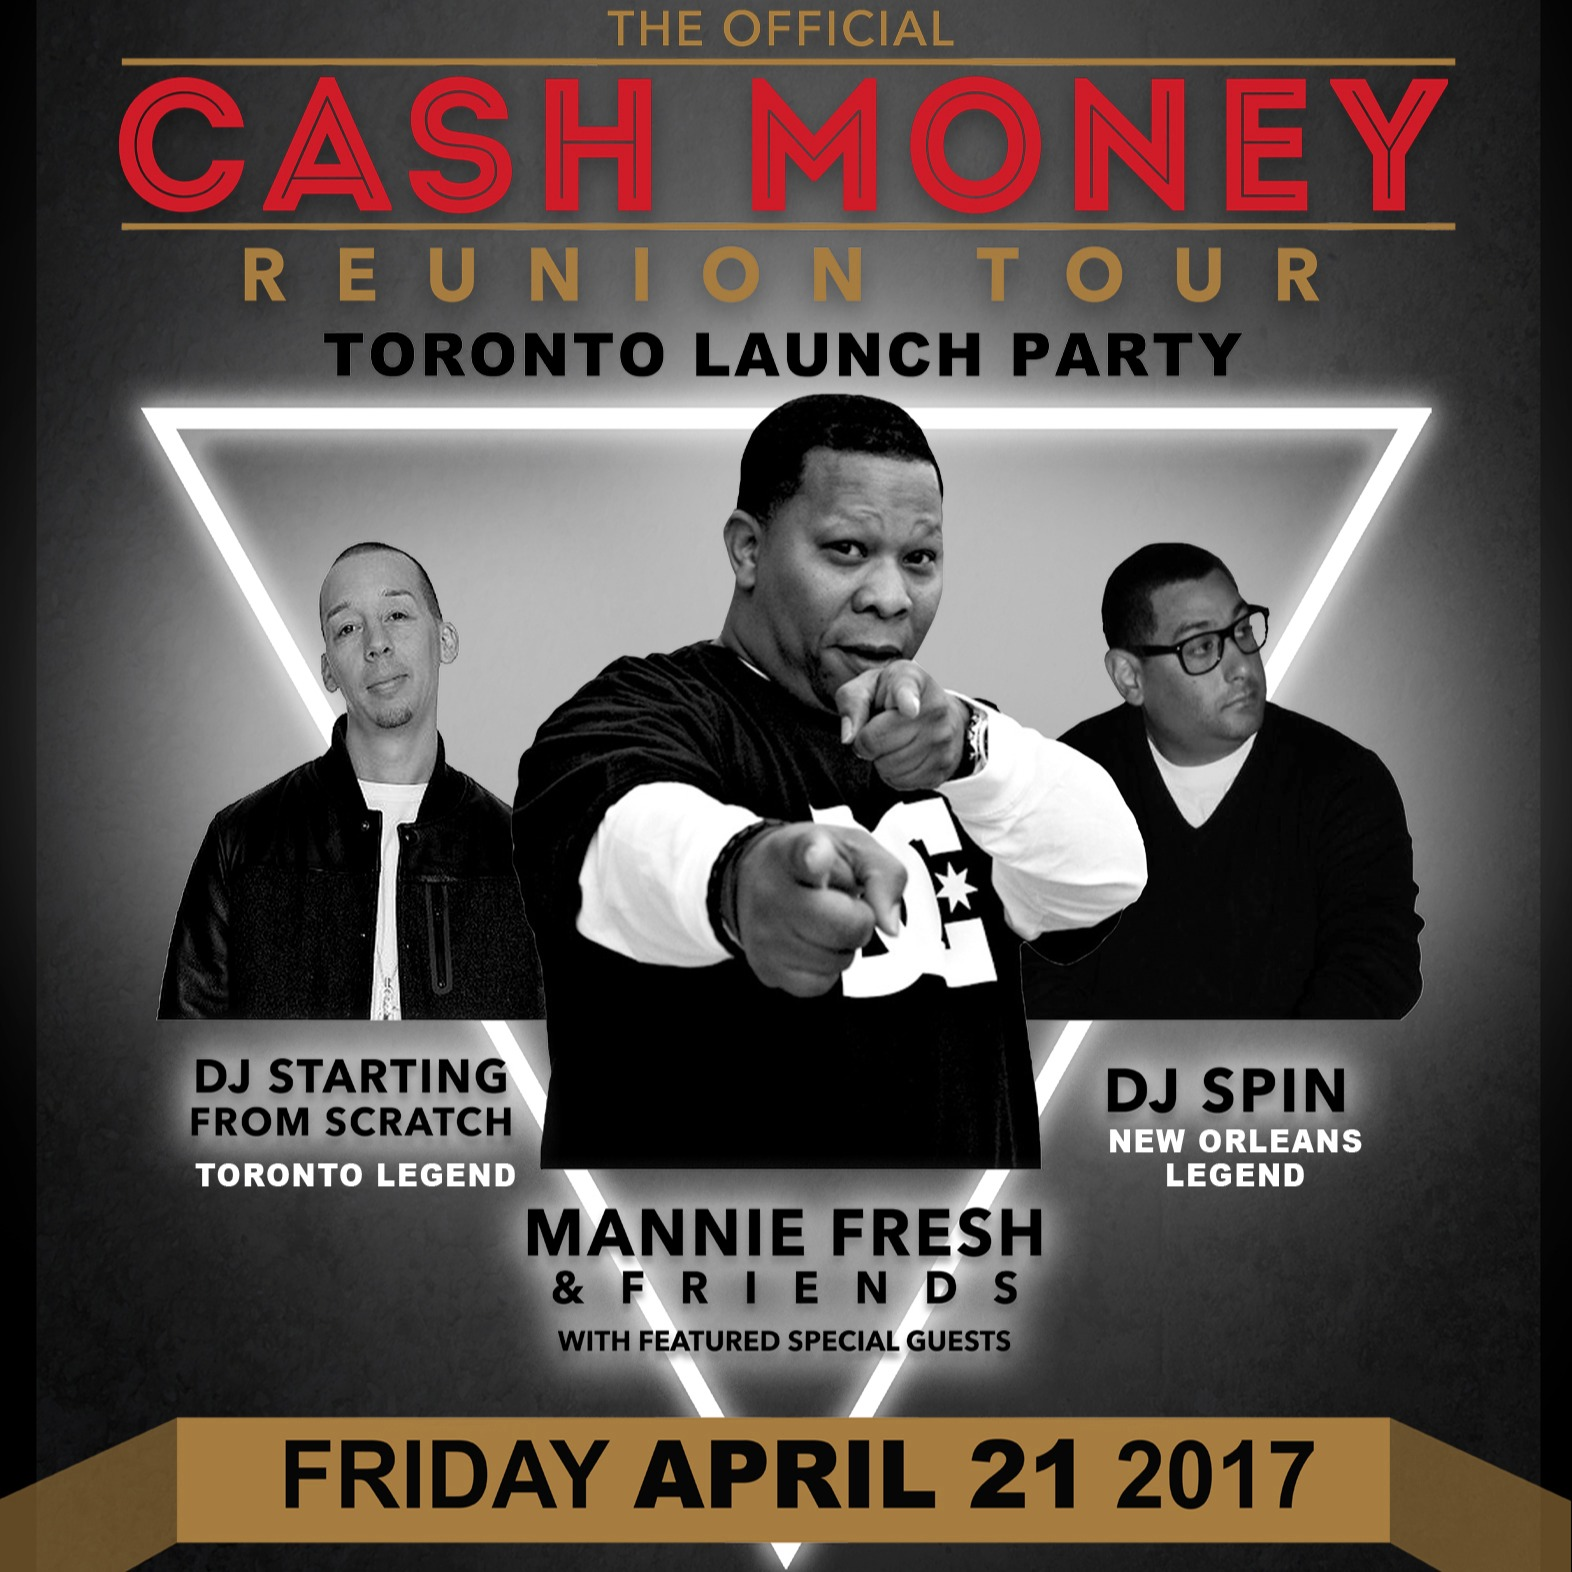 The Official Cash Money Reunion Tour Toronto Launch Party